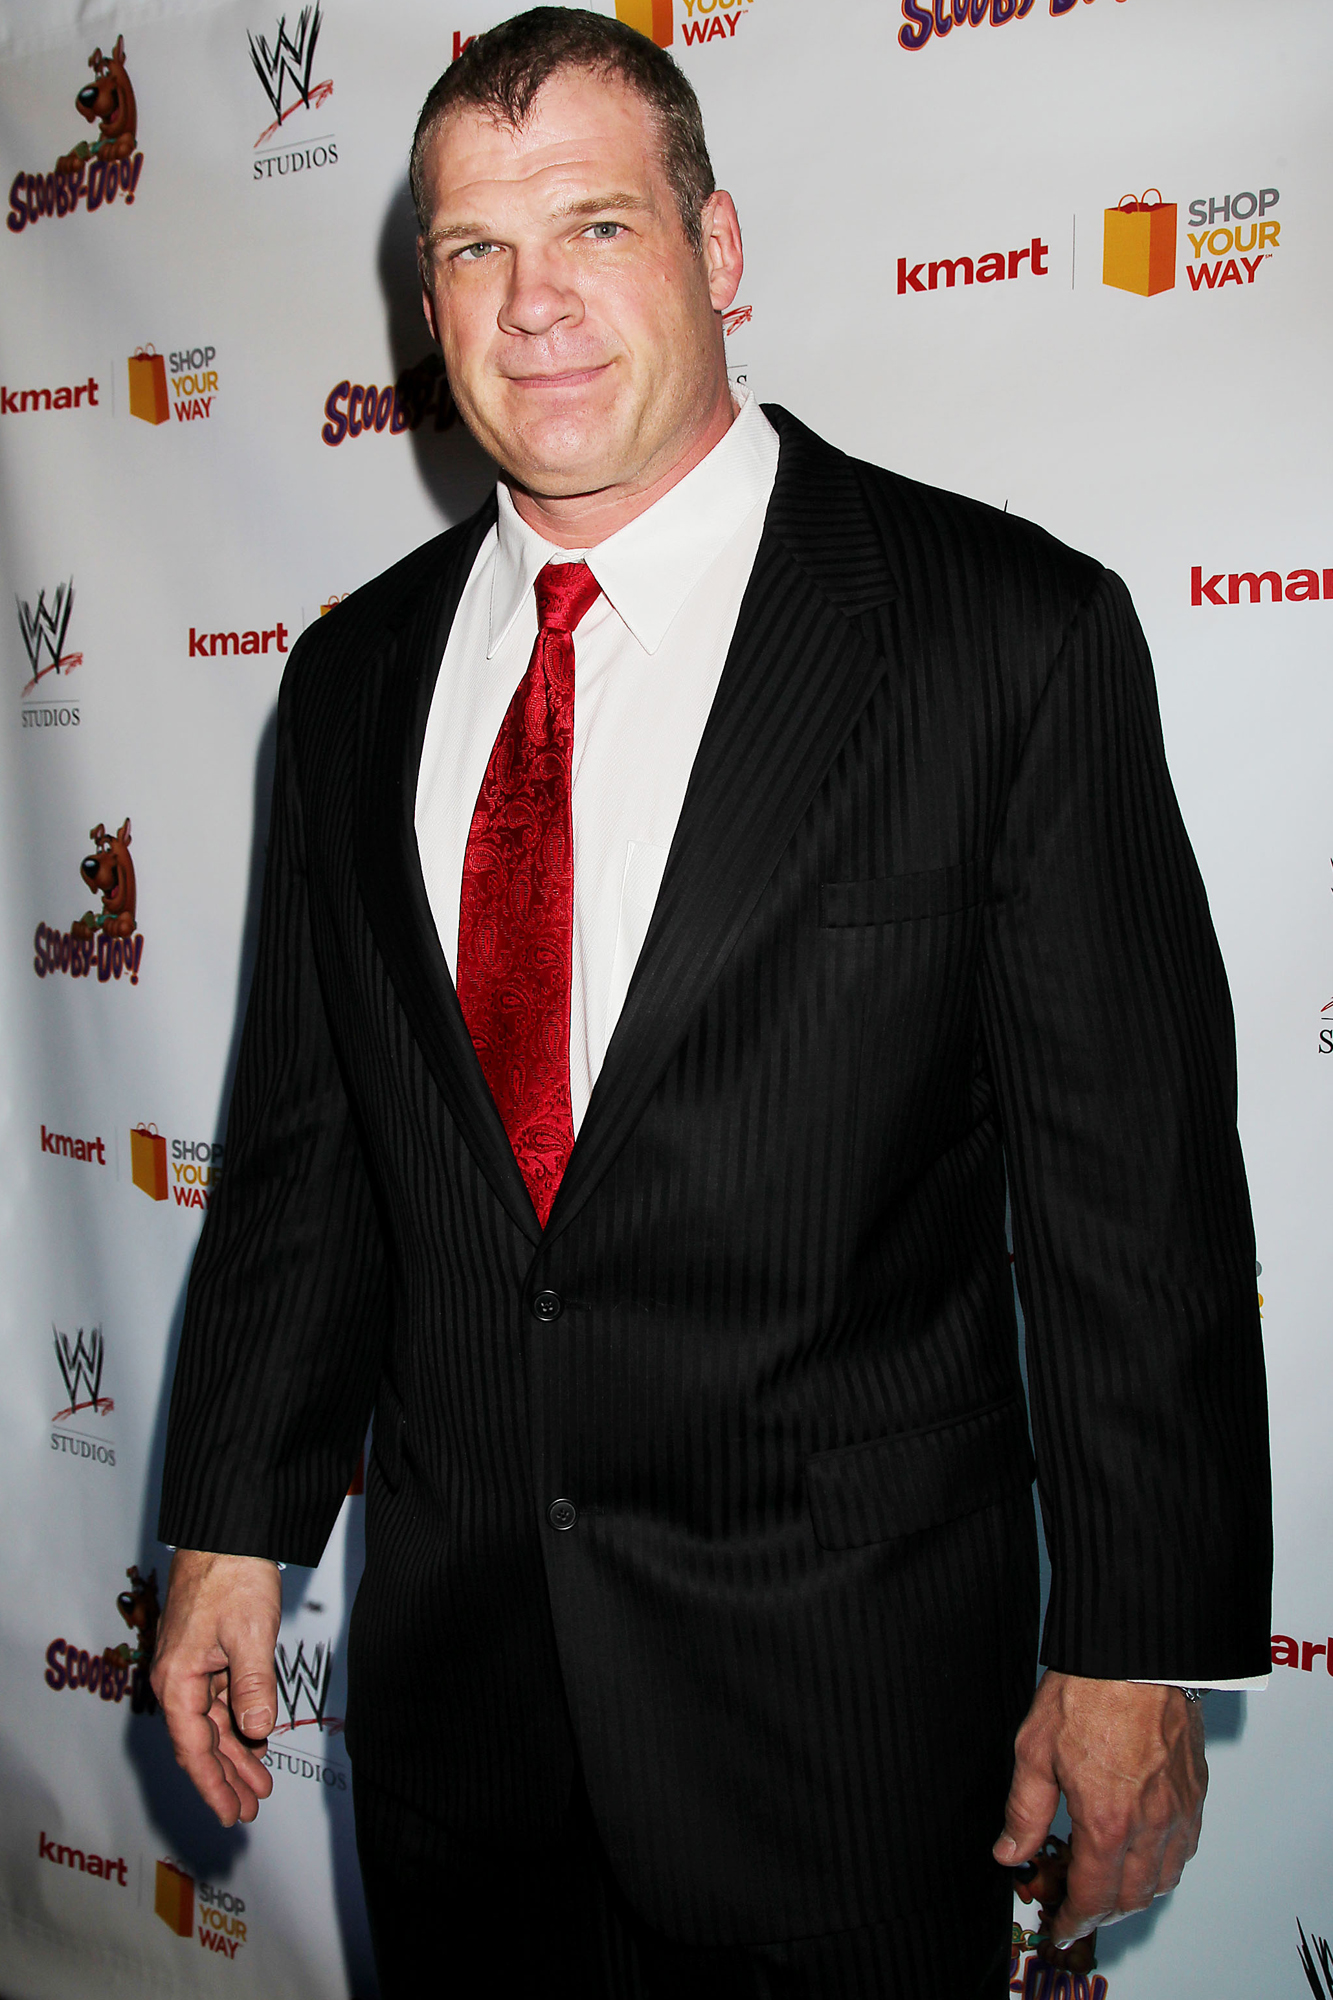 'Scooby Doo Wrestlemaina Mystery' VIP Screening, New York, America - 22 Mar 2014